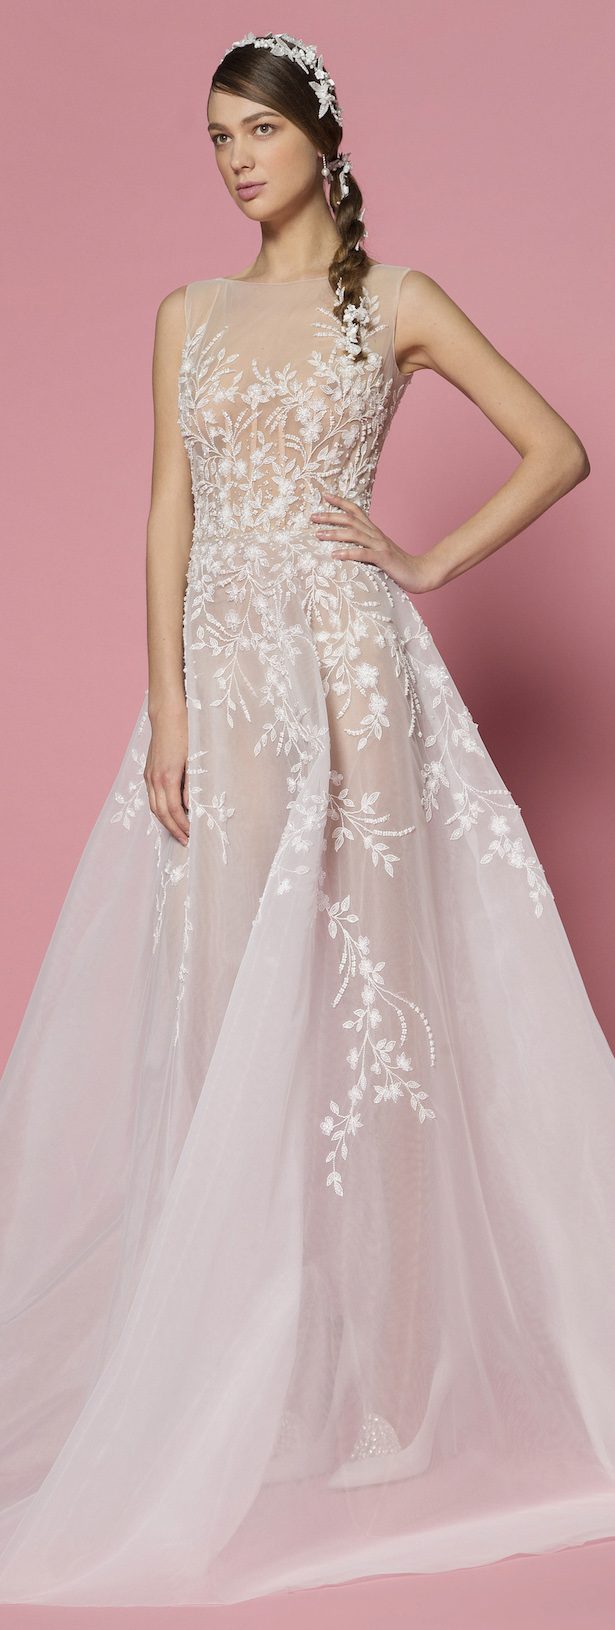 Georges Hobeika Bridal 2018 Wedding Dress